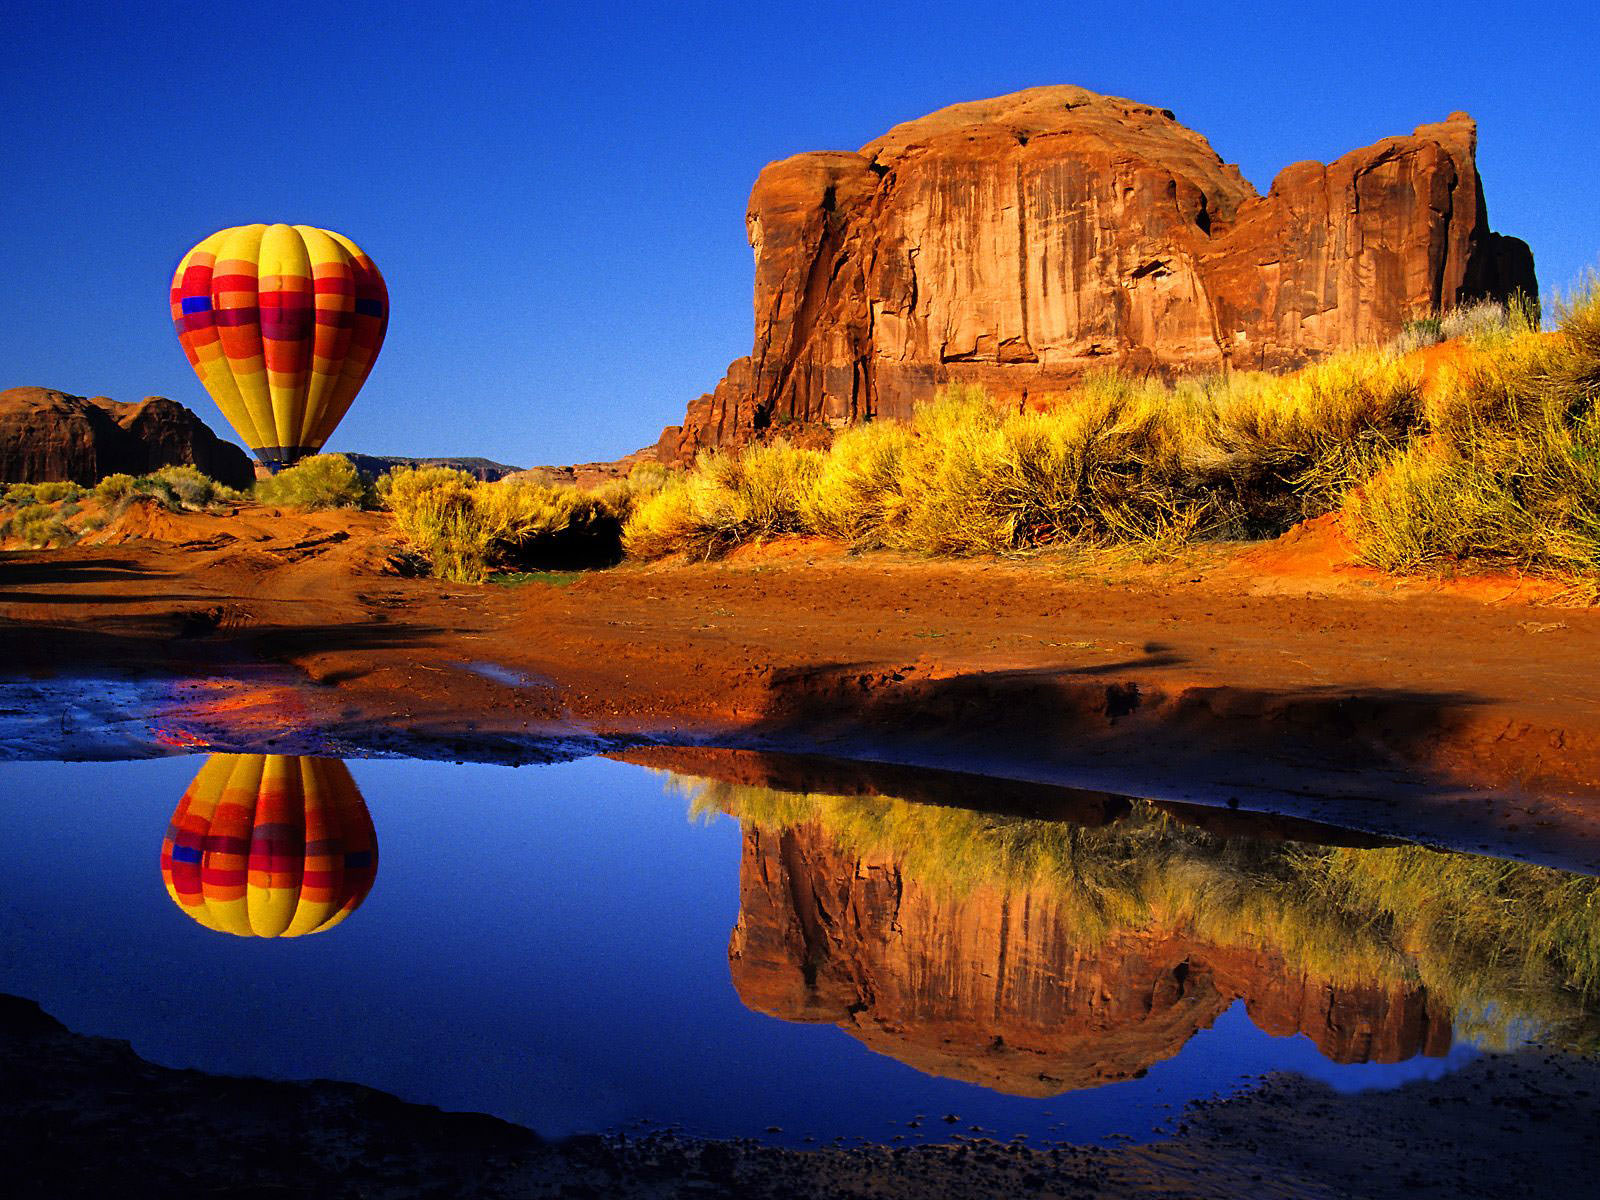 HOT-AIR BALLOON RIDE